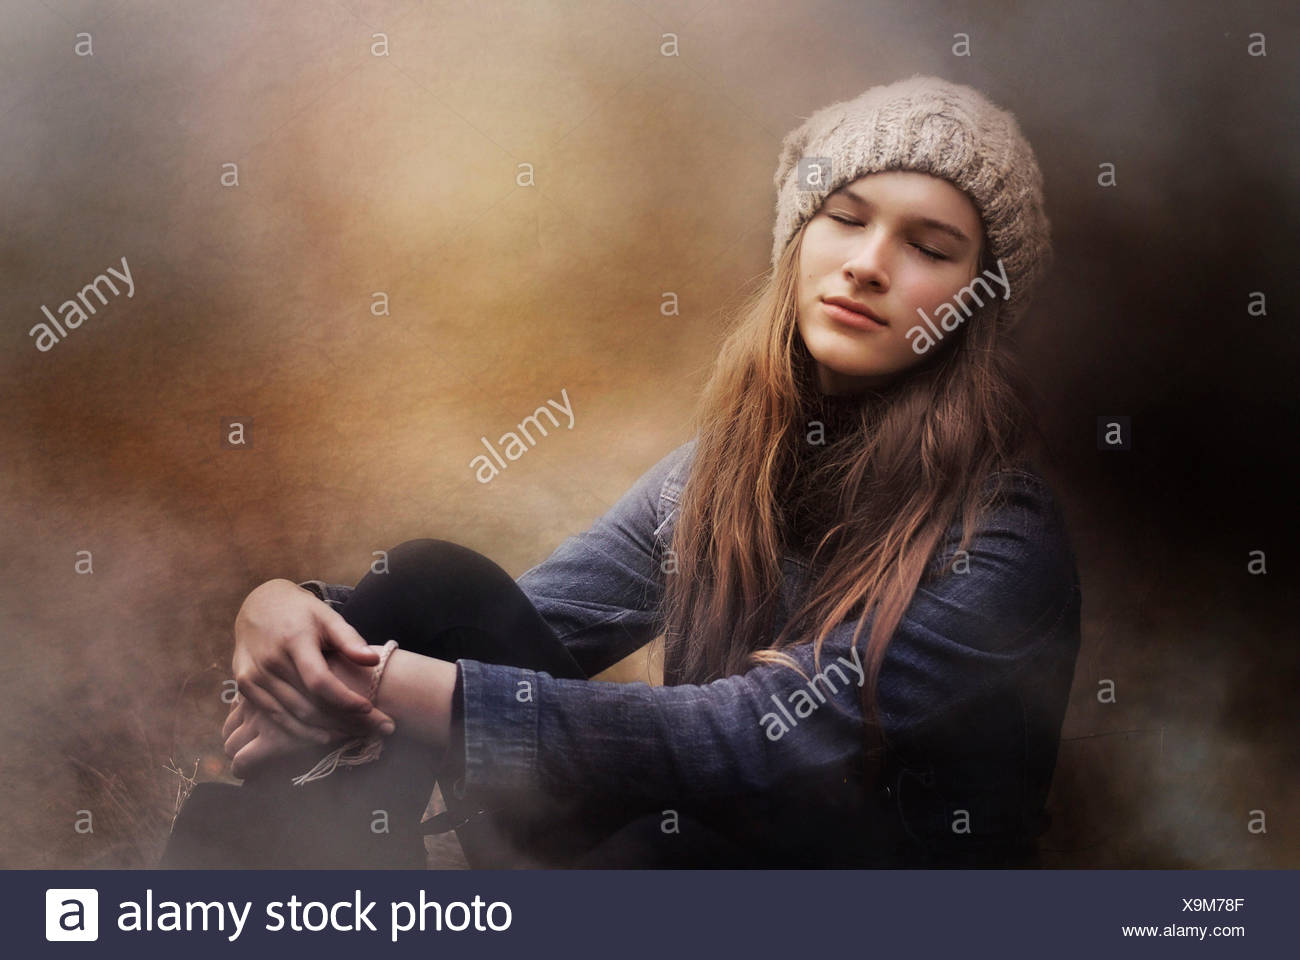 Teenage girl day dreaming - Stock Image